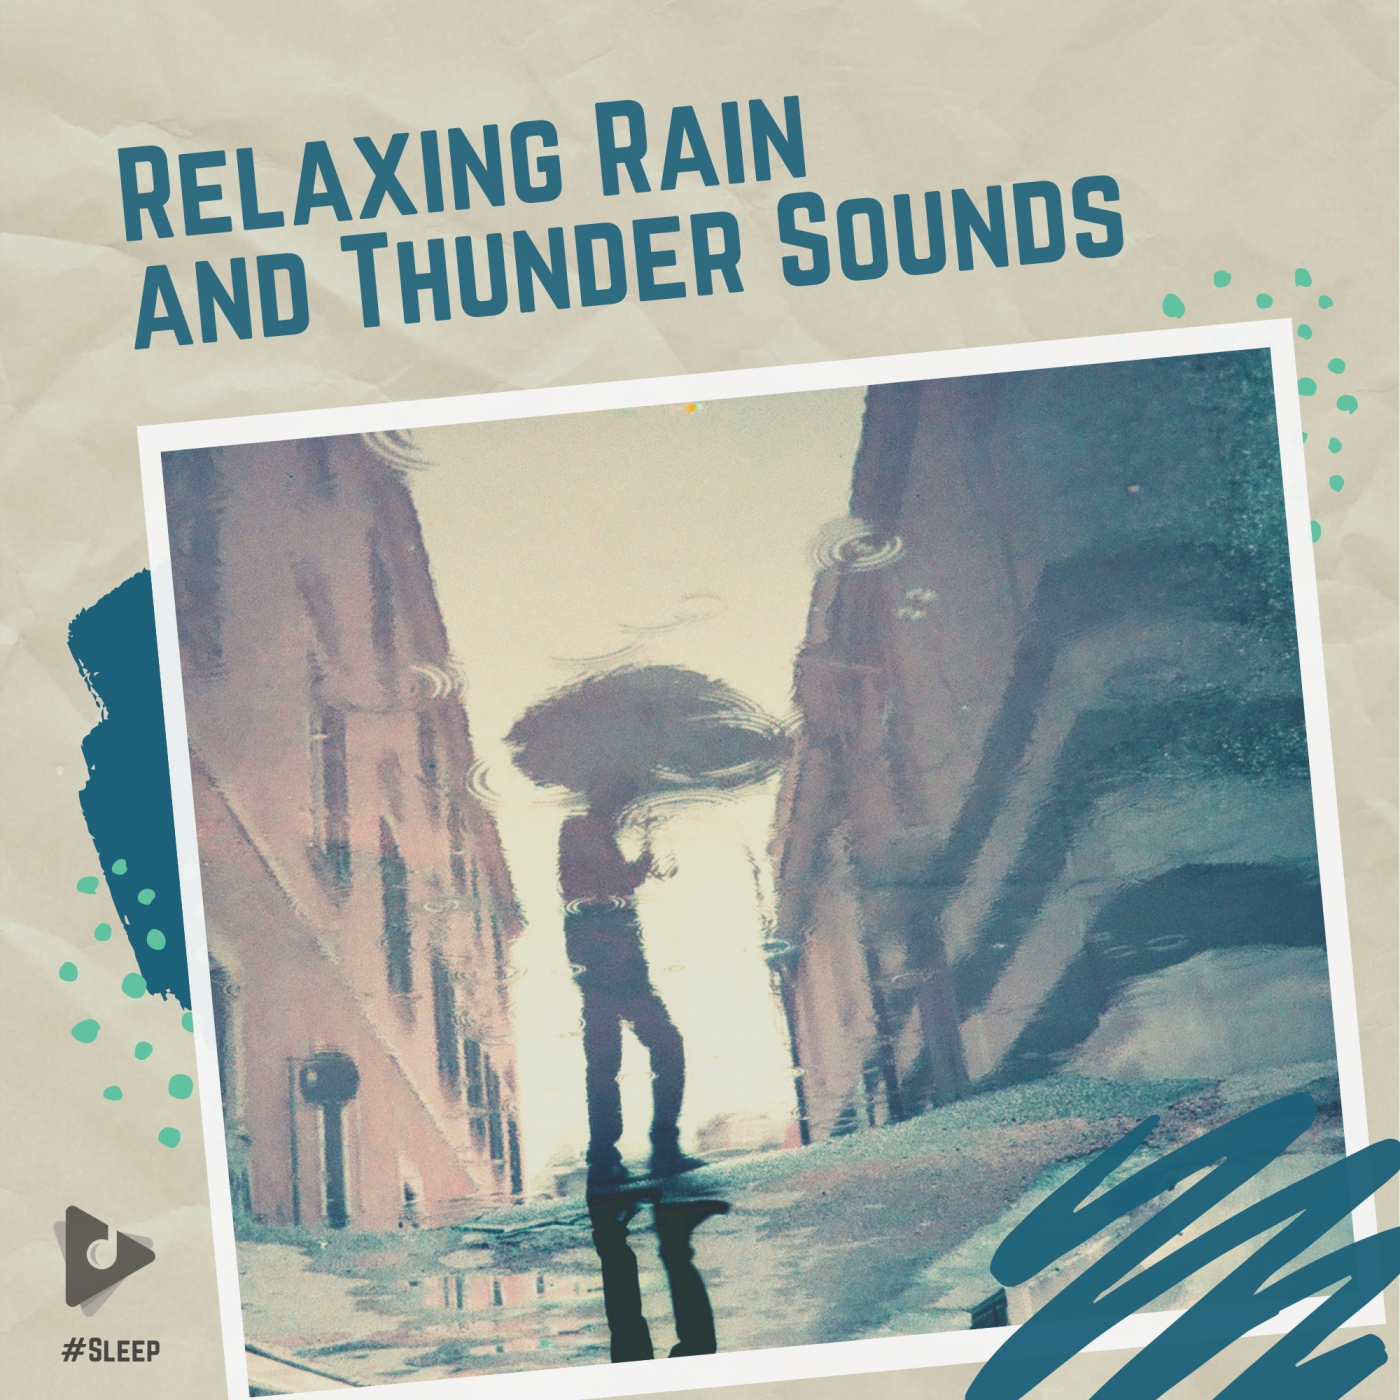 Relaxing Rain and Thunder Sounds